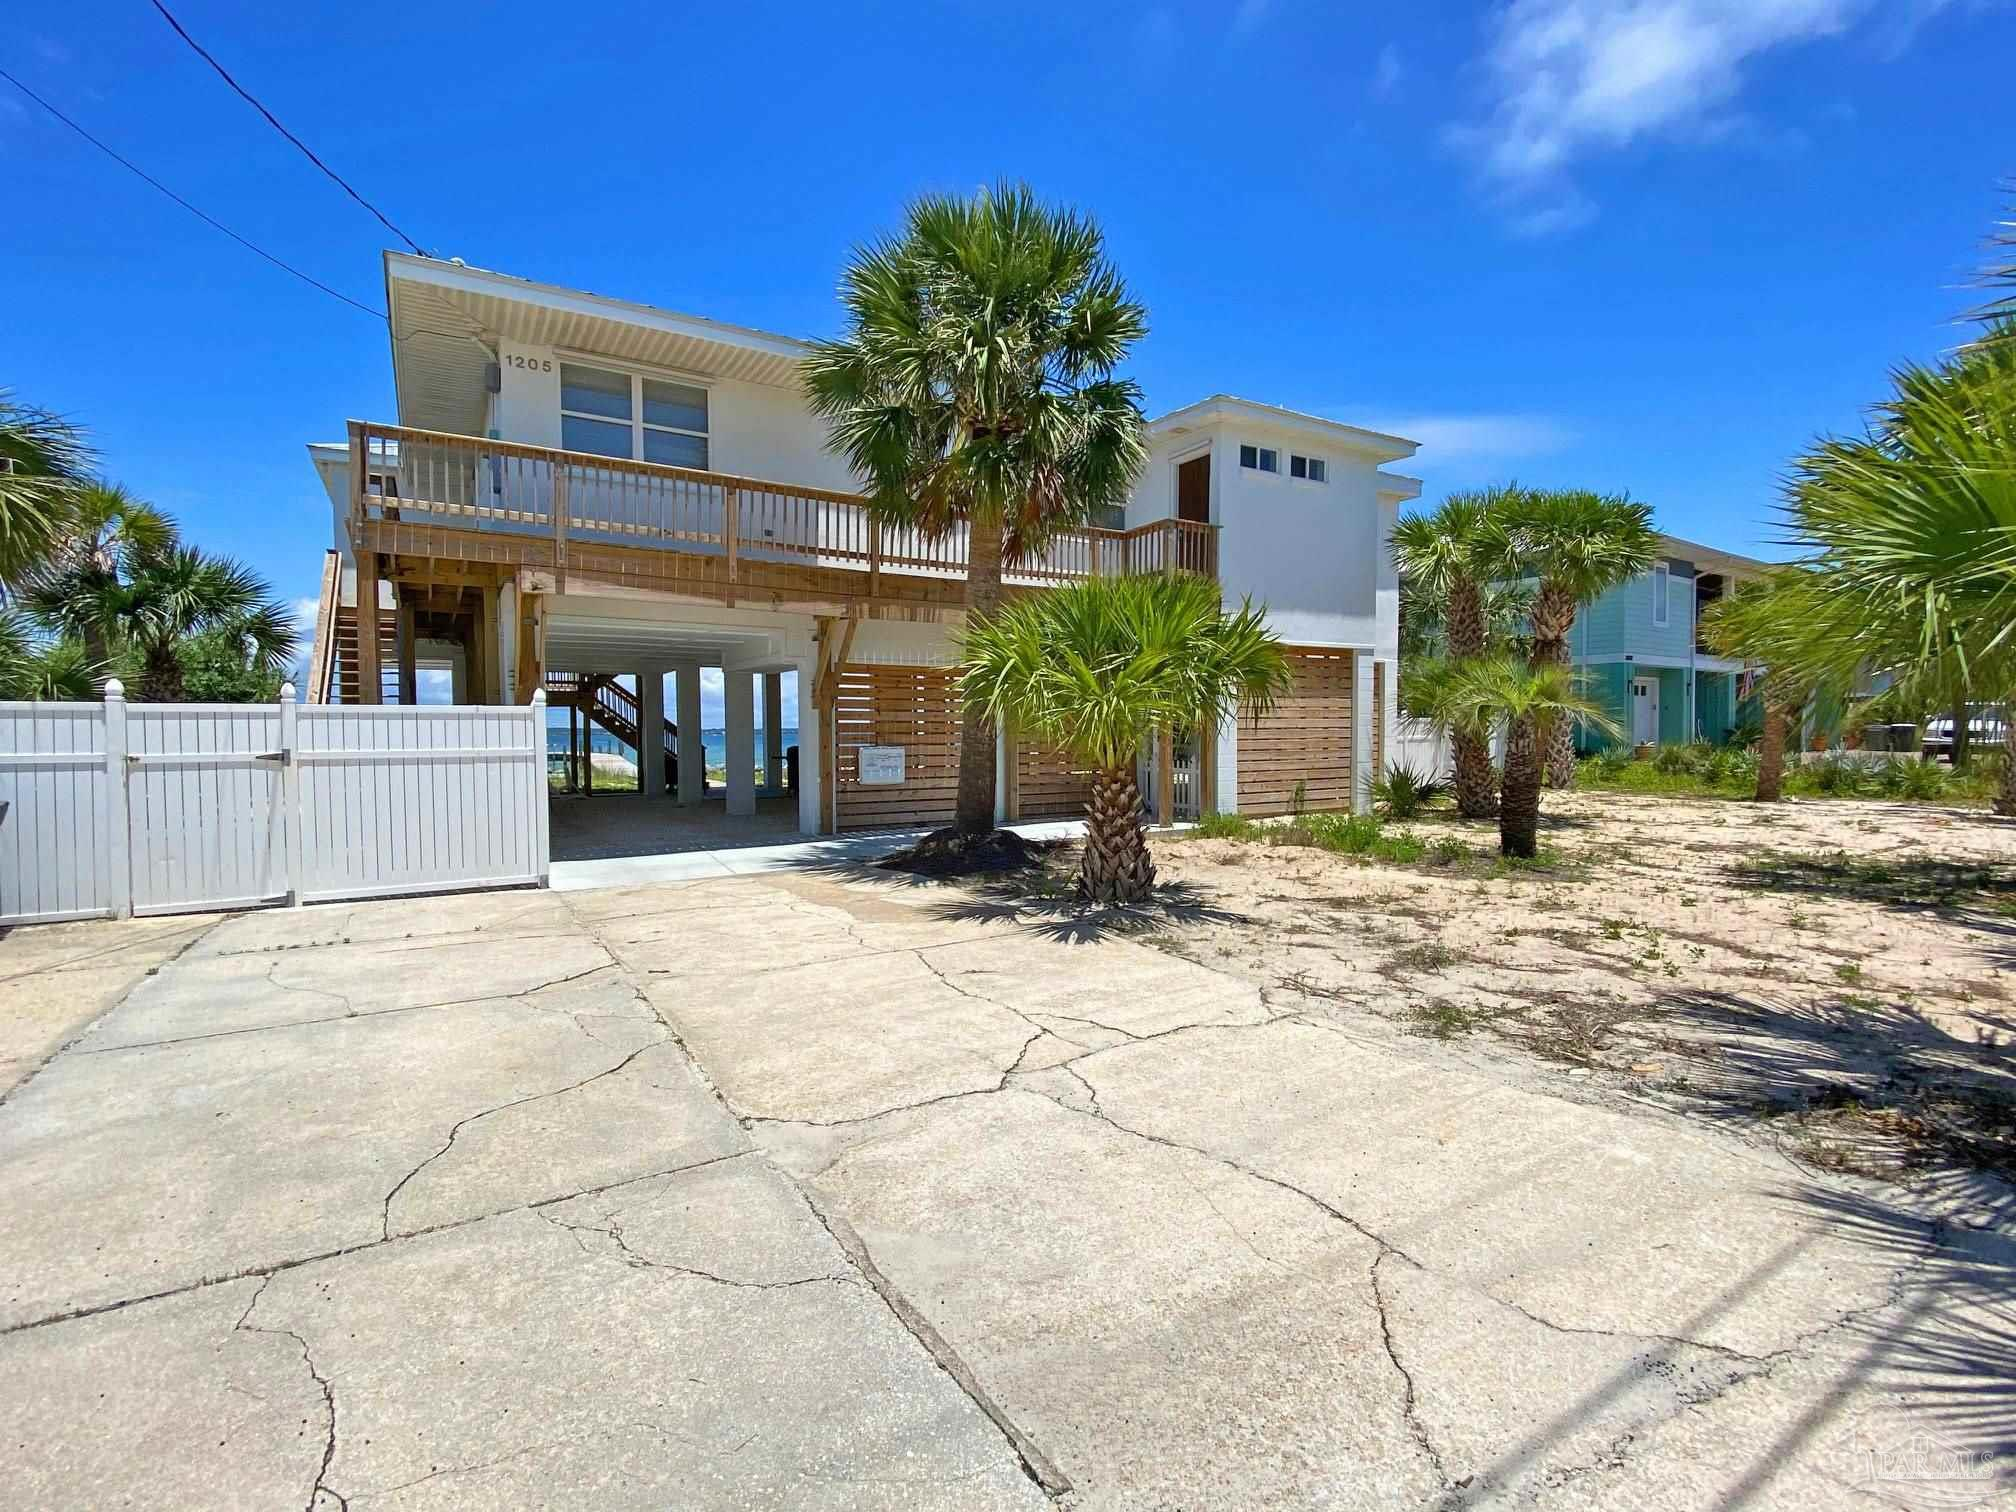 Located directly on Santa Rosa Sound, this home (elevated off ground in June 2019) offers outstanding views of beautiful Santa Rosa Sound. This home was an original cinder block cottage that was elevated to make is less susceptible to rising water. Because the structure is elevated with no ground floor living the flood insurance is now very reasonable.   This home offers 5 bedrooms and 3 baths and with current configuration is set up to sleep a maximum of 16. Most of the home has the original terrazzo flooring. The new master bedroom and master bath which were added in 2020 have porcelain tile.   The kitchen is large with abundant work space and a nice size pantry. The north facing wall of the kitchen has multiple windows offering a panoramic view of Santa Rosa Sound. There is a door onto the large covered deck from the kitchen as well as 2 sets of French doors from the living/dining area onto the deck.   The area under the home is ideally setup for outdoor living. The yard is fenced if you have family members of the 4 legged variety. There are steps into the water on the west side of the lot and a pier for your boating and fishing enjoyment.   This is a great Florida beach house if you're looking for a place to relax and enjoy the beauty of Pensacola Beach. This is not a water front mansion where you have to worry about someone walking in with sand on their feet. With this home you get the laid back lifestyle and an opportunity to enjoy the beach the way your parents and grandparents did in the 1960's but with modern conveniences.   Home is offered fully furnished so all you need is shorts, swim suits and flip flops to embrace the beach lifestyle.   All measurements to be verified by buyer.